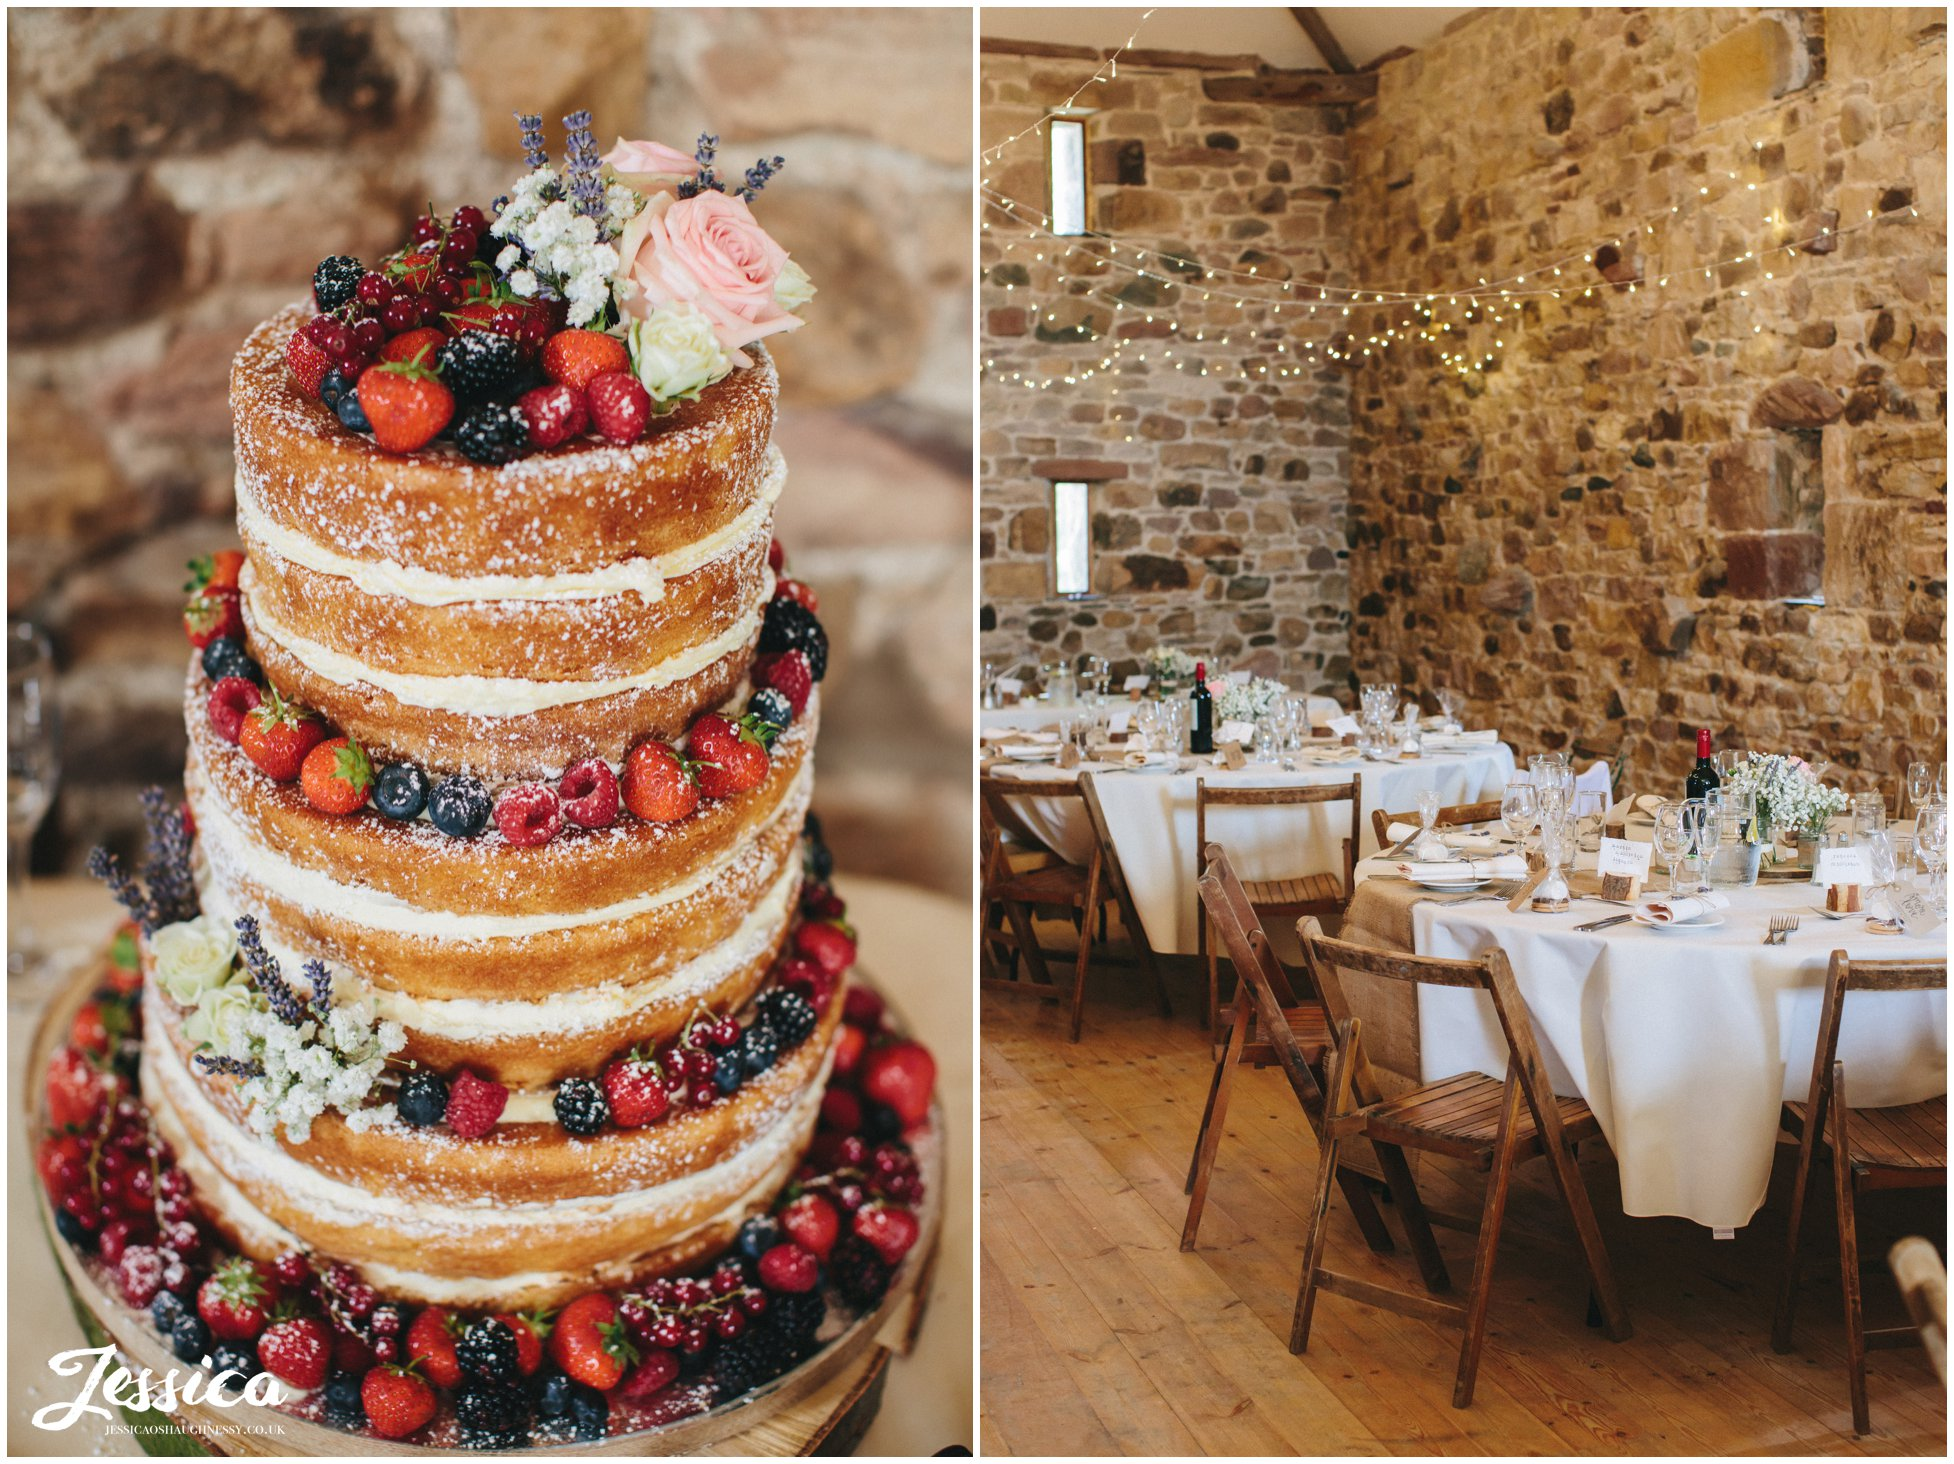 Naked cake decorated with fruit displayed in the rustic barn at Three Hills Barn, Cumbria